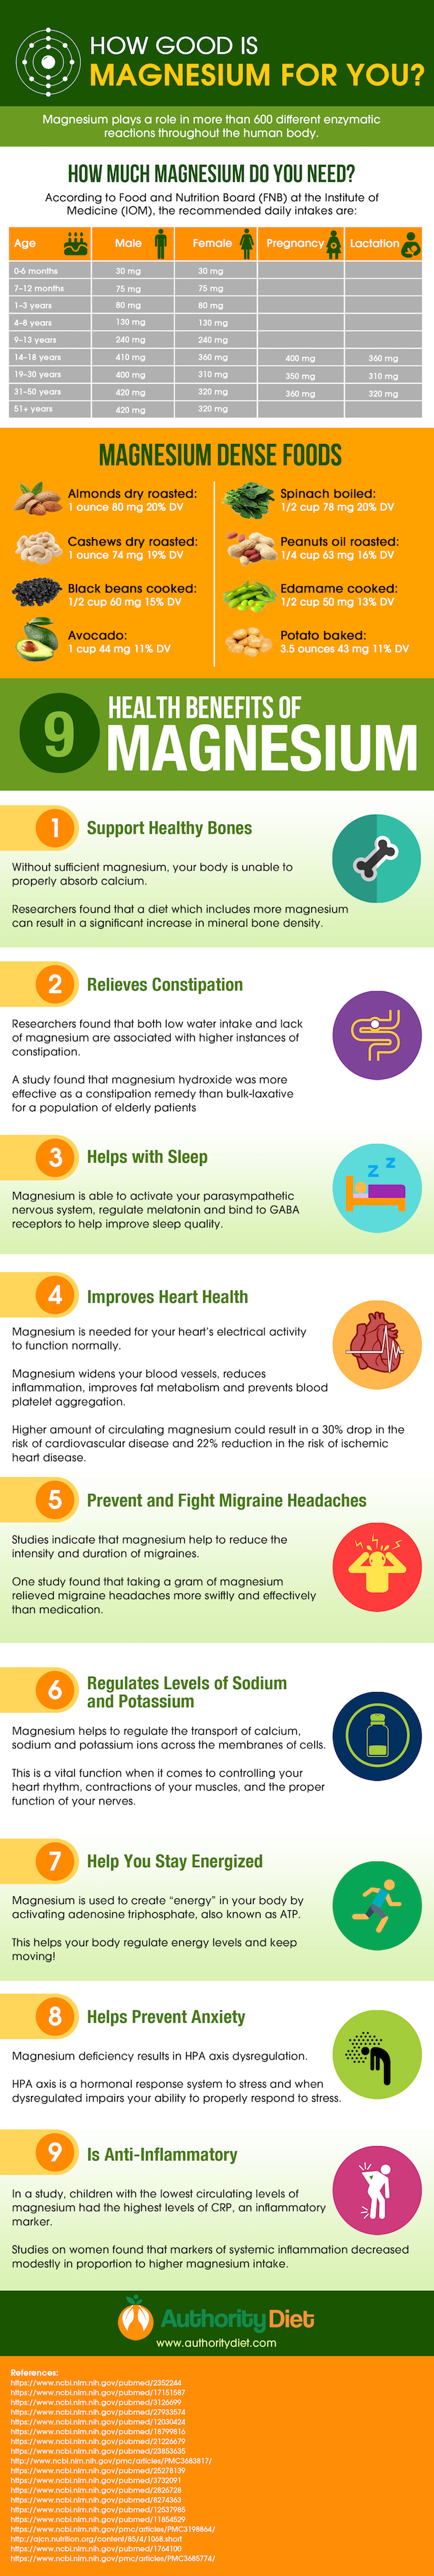 Why Magnesium is a Vital Nutrient: 9 Key Health Benefits - Infographic